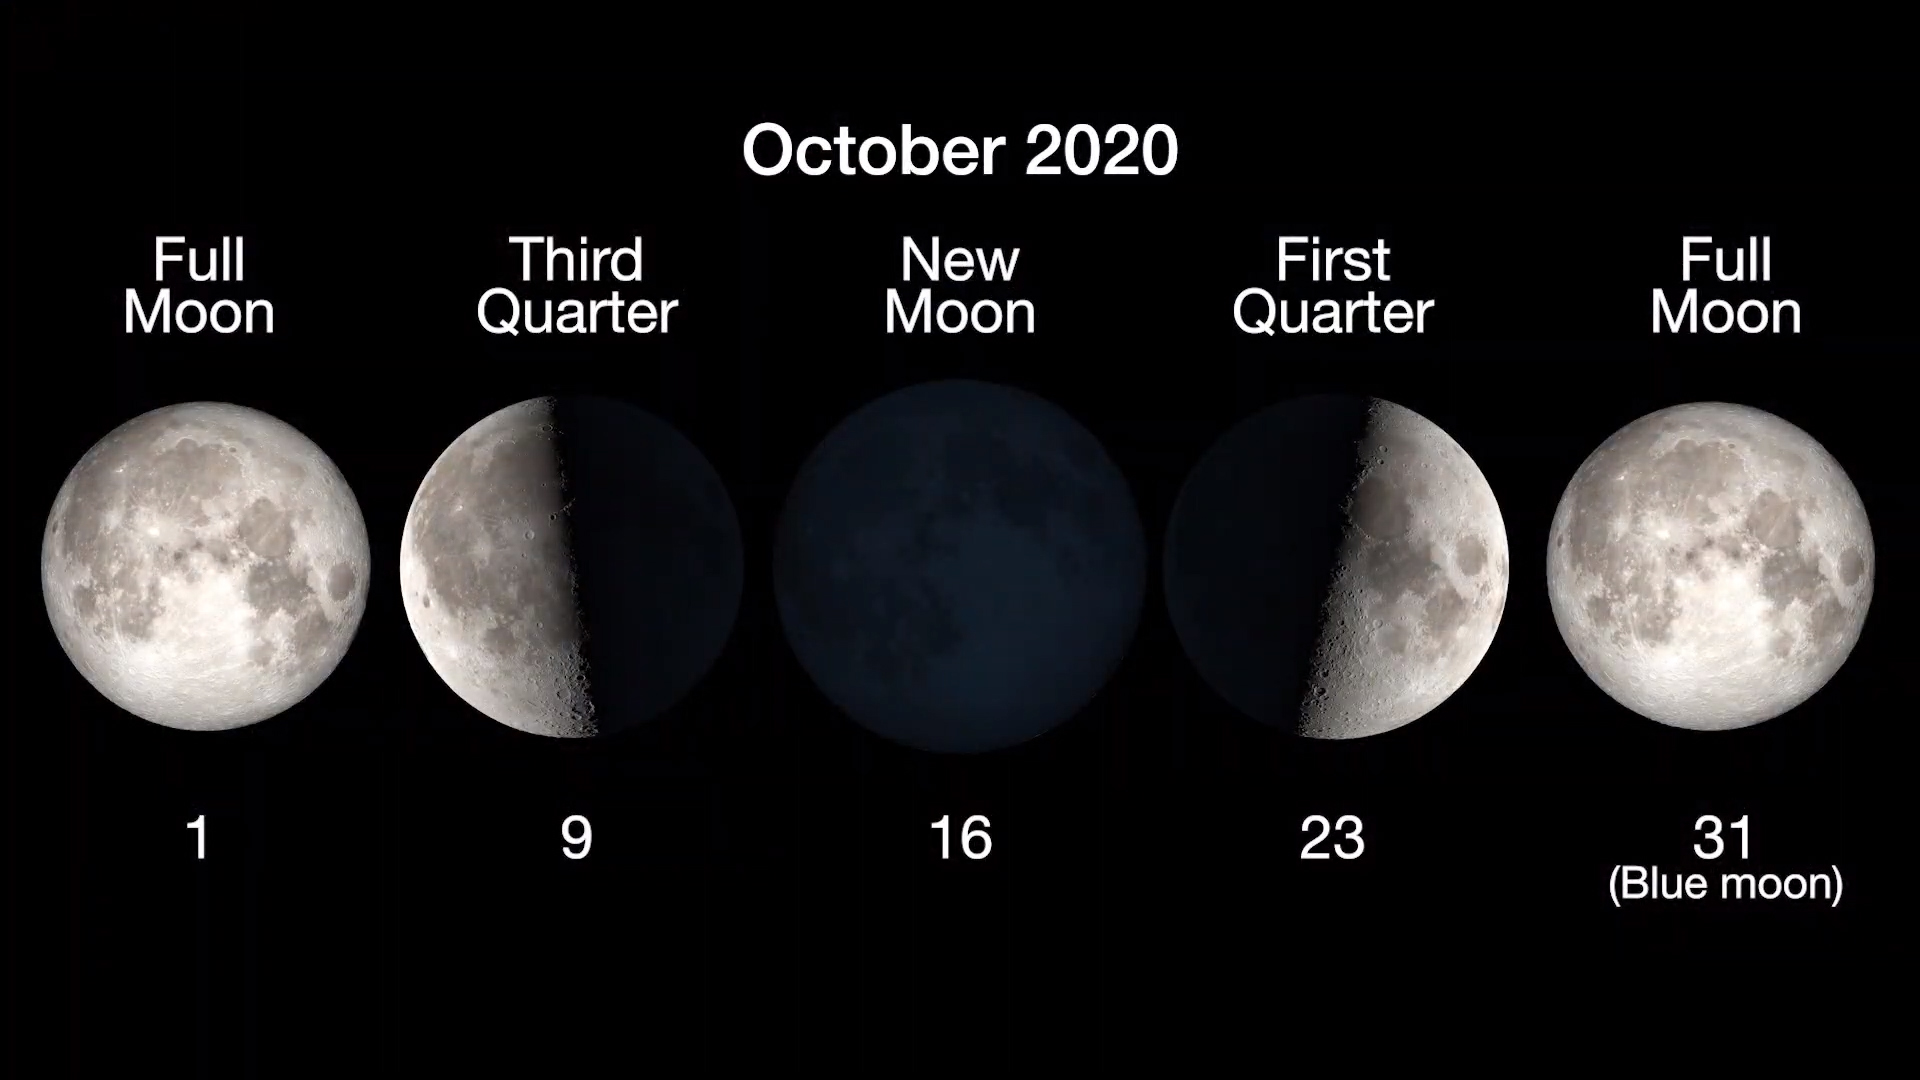 Moon Phase For Halloween 2020 October 2020   Part II: The Next Full Moon is a Halloween Hunter's